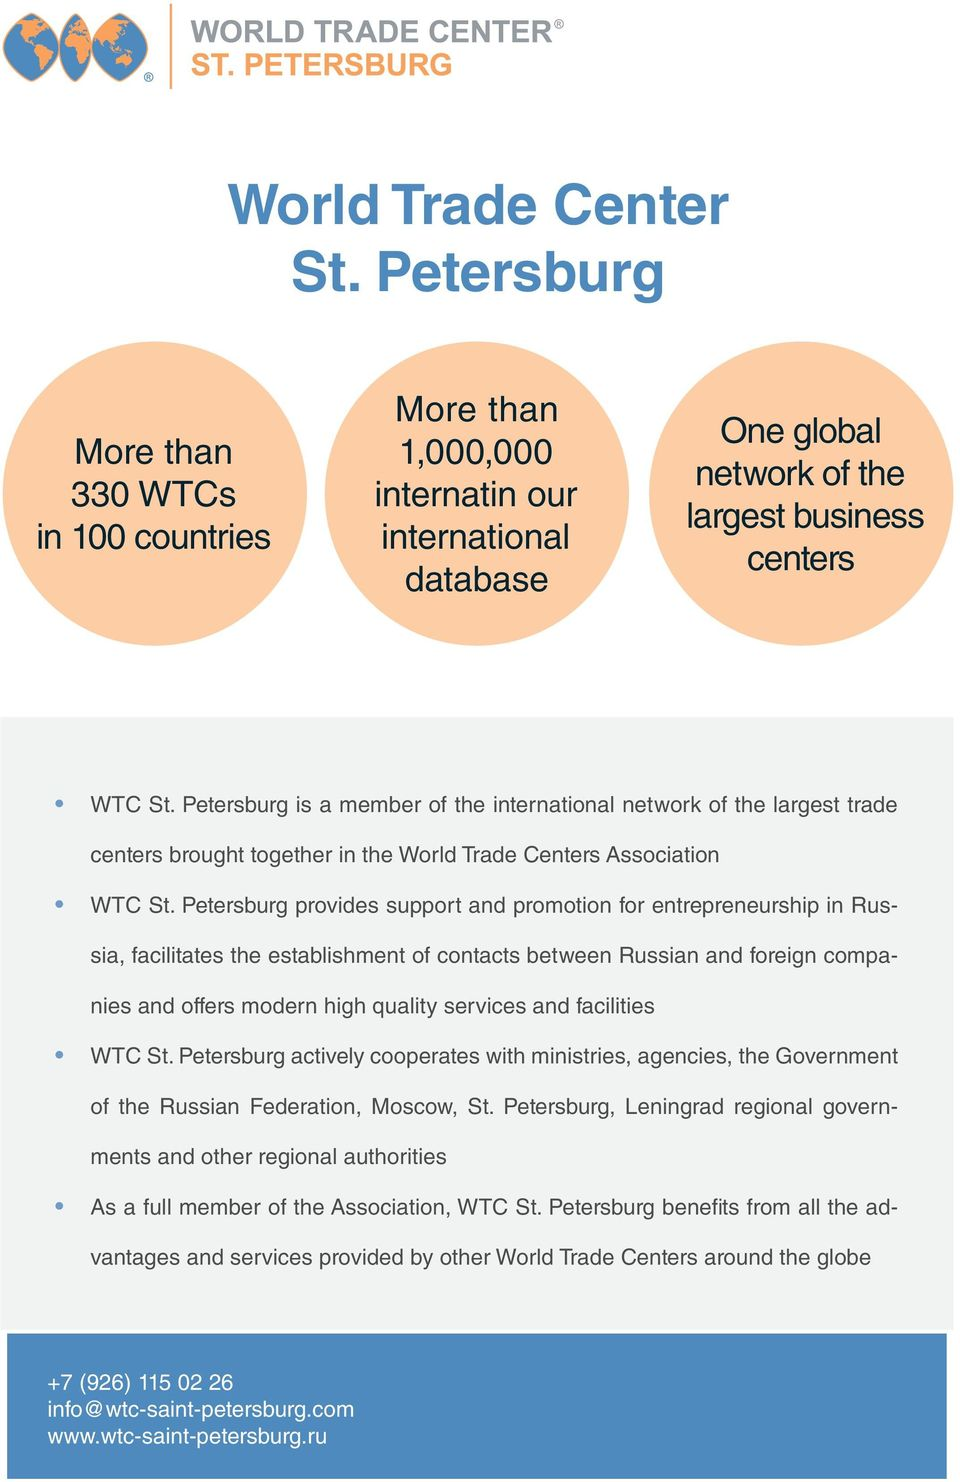 Petersburg provides support and promotion for entrepreneurship in Russia, facilitates the establishment of contacts between Russian and foreign companies and offers modern high quality services and